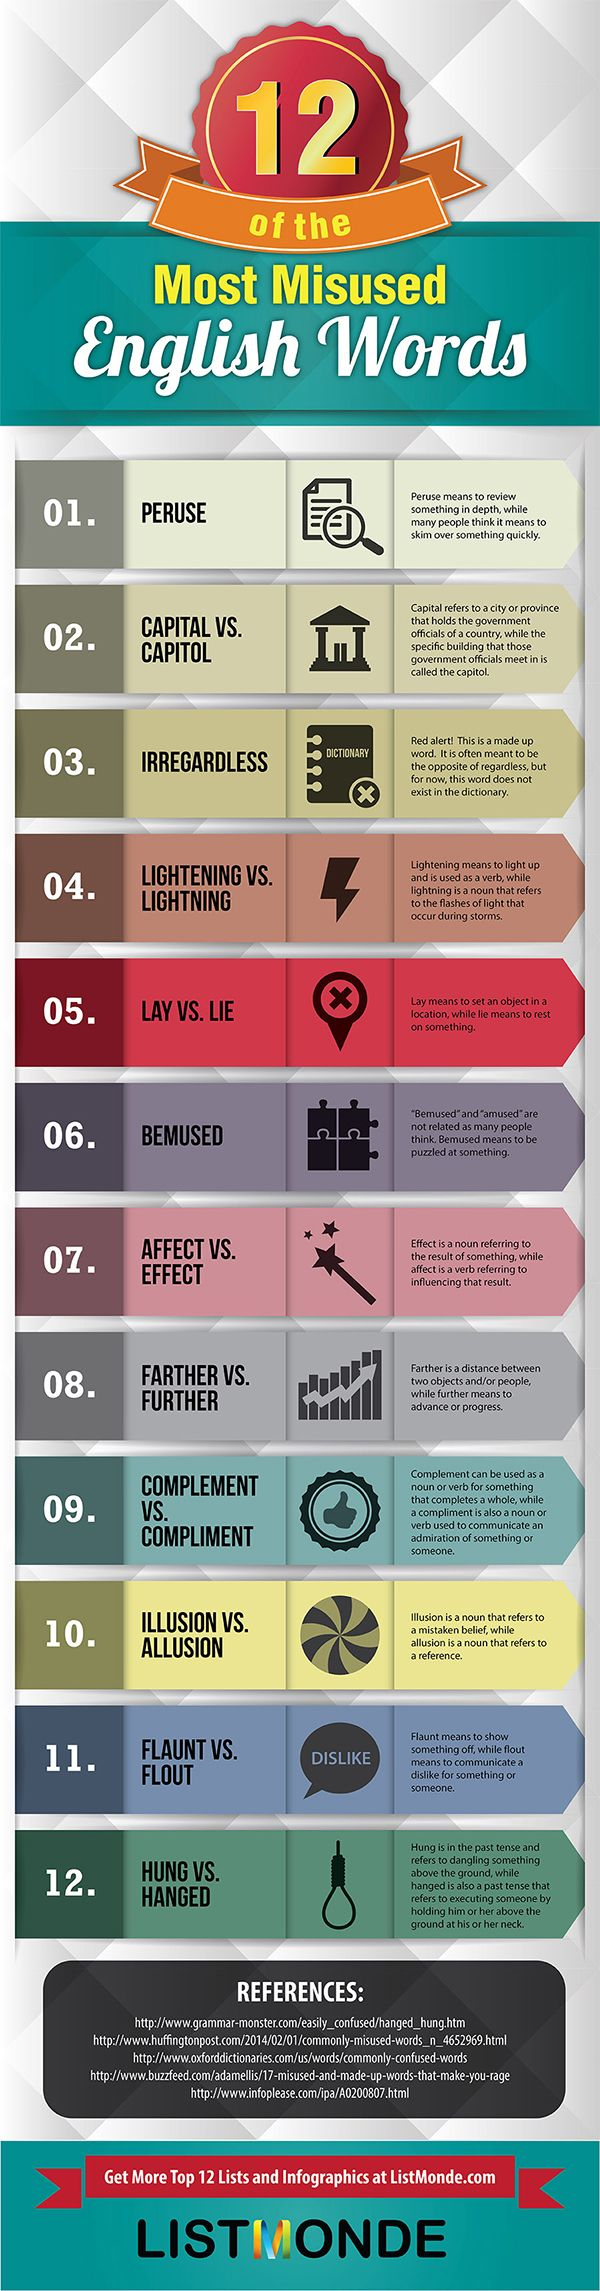 12 of the Most Misused English Words.